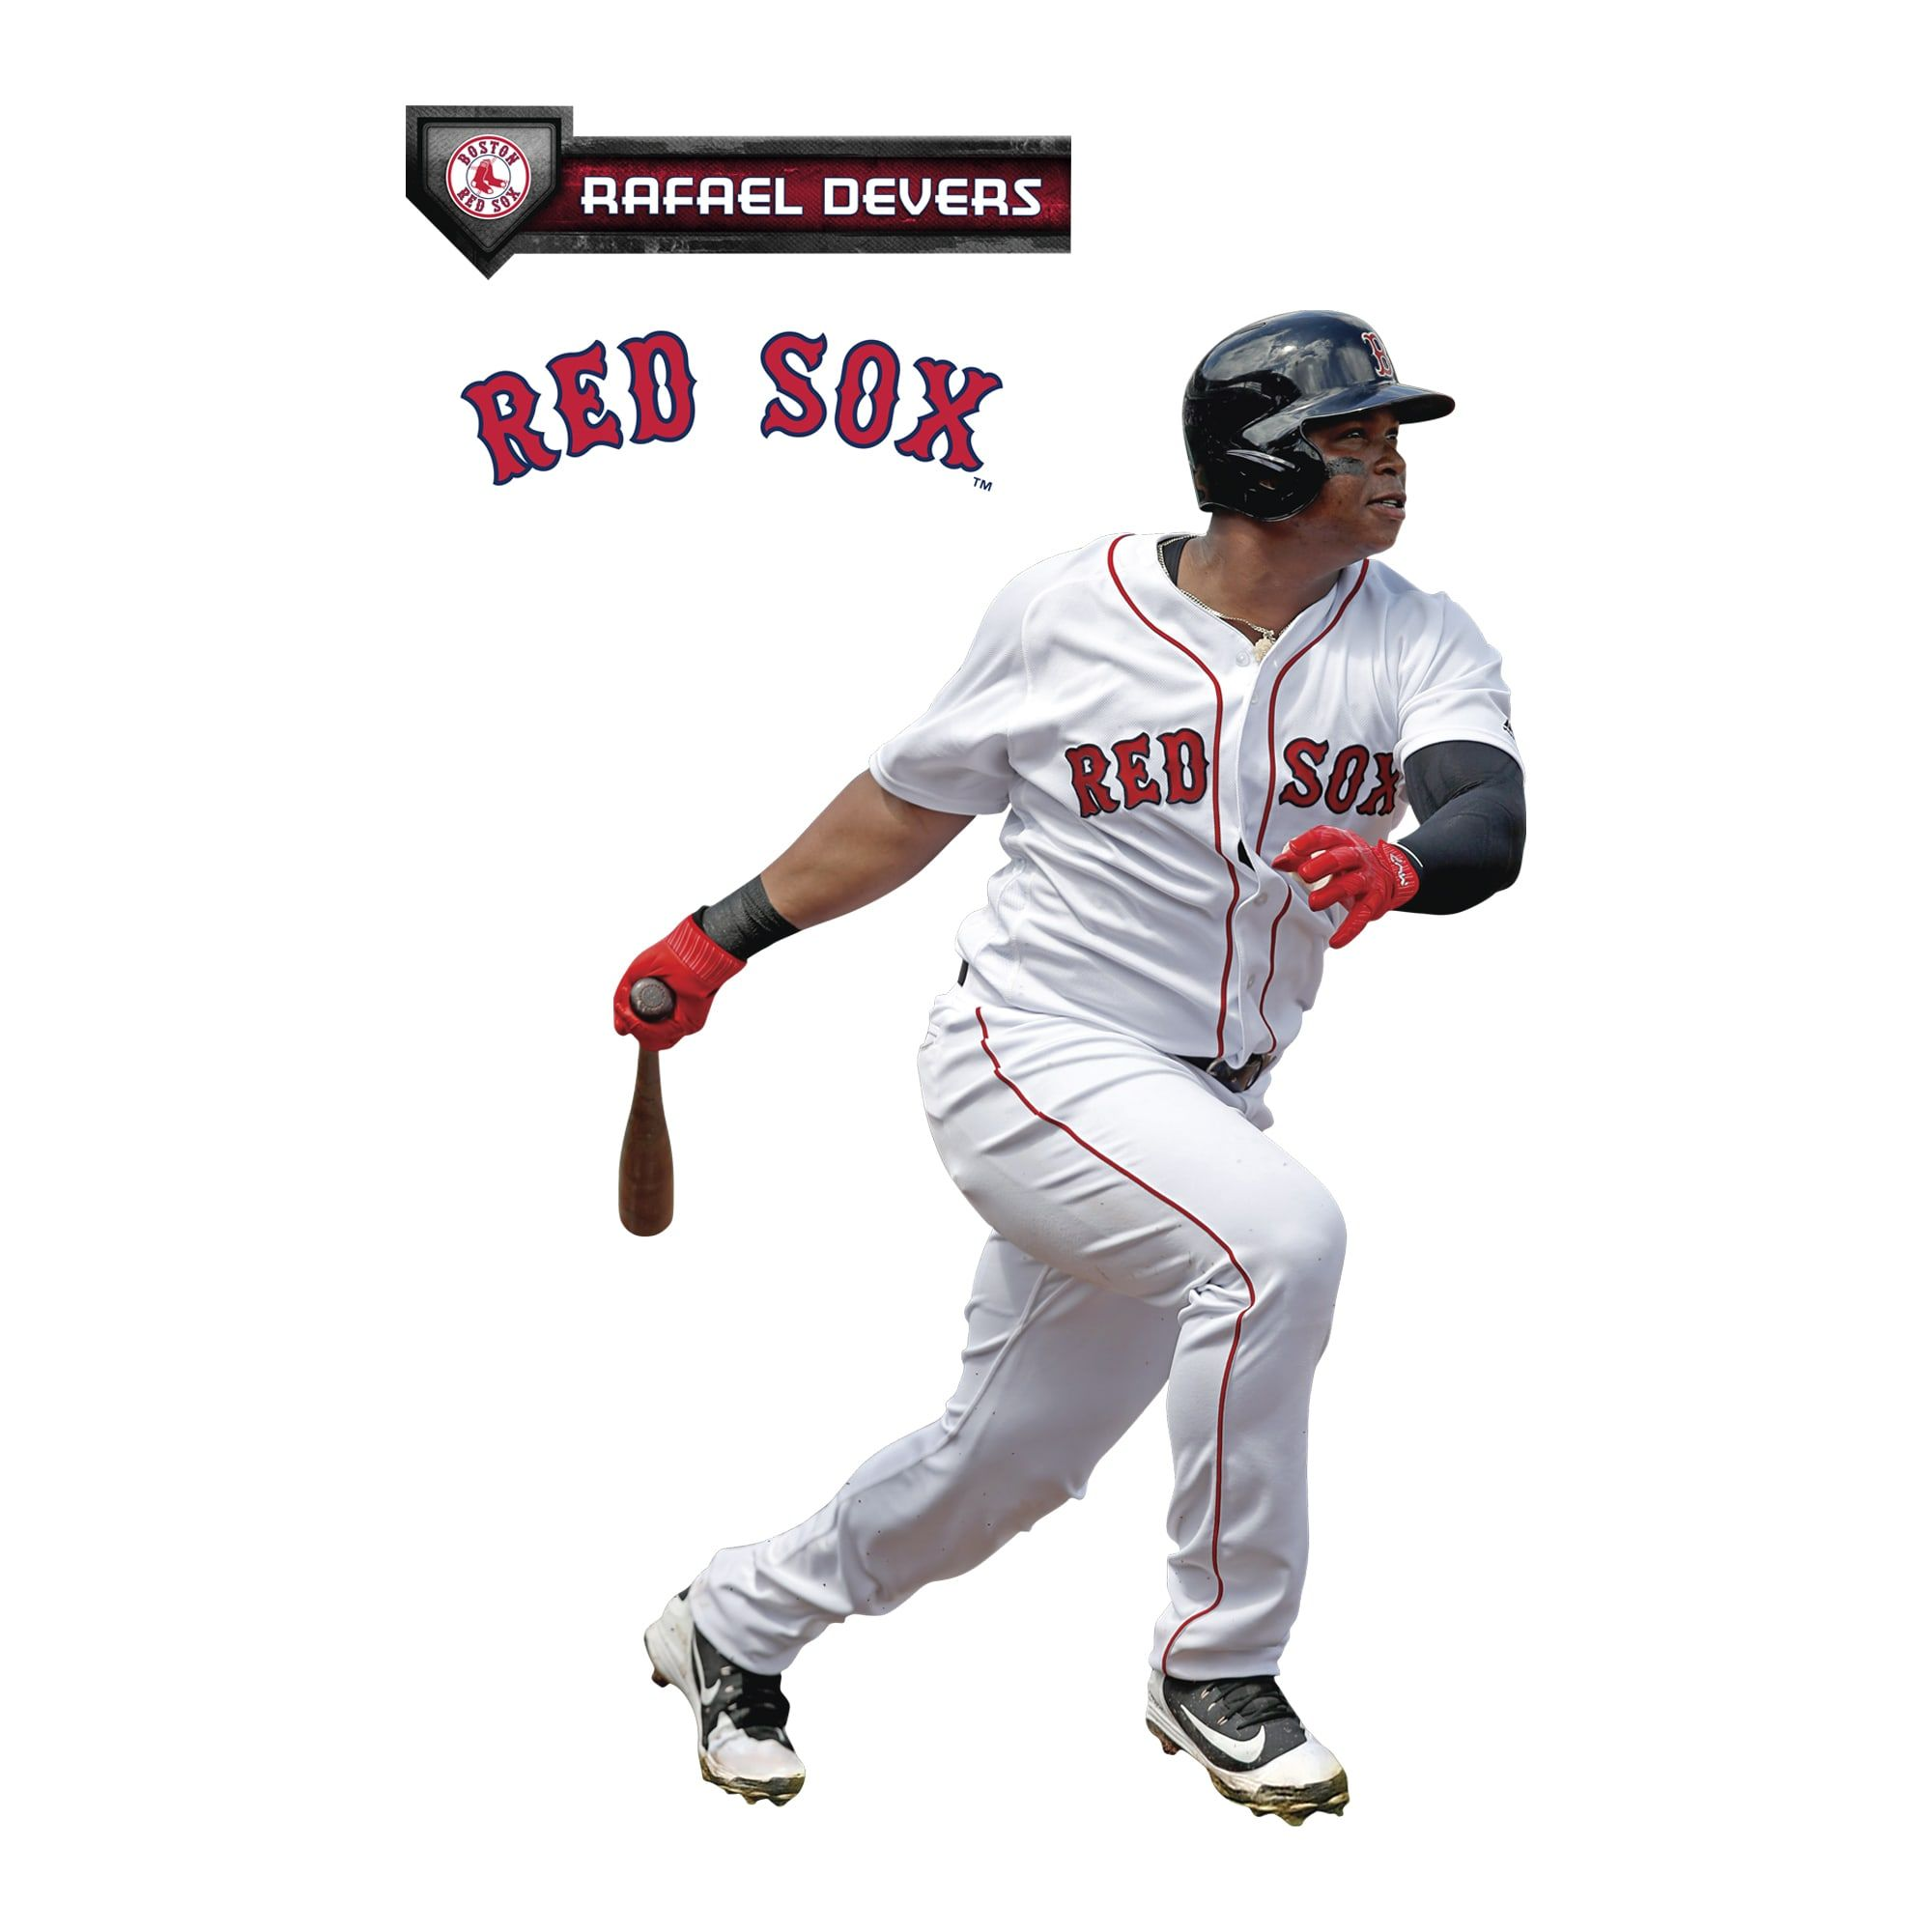 Rafael Devers X Large Officially Licensed Mlb Removable Wall Decal Removable Wall Decals Removable Wall Wall Decals